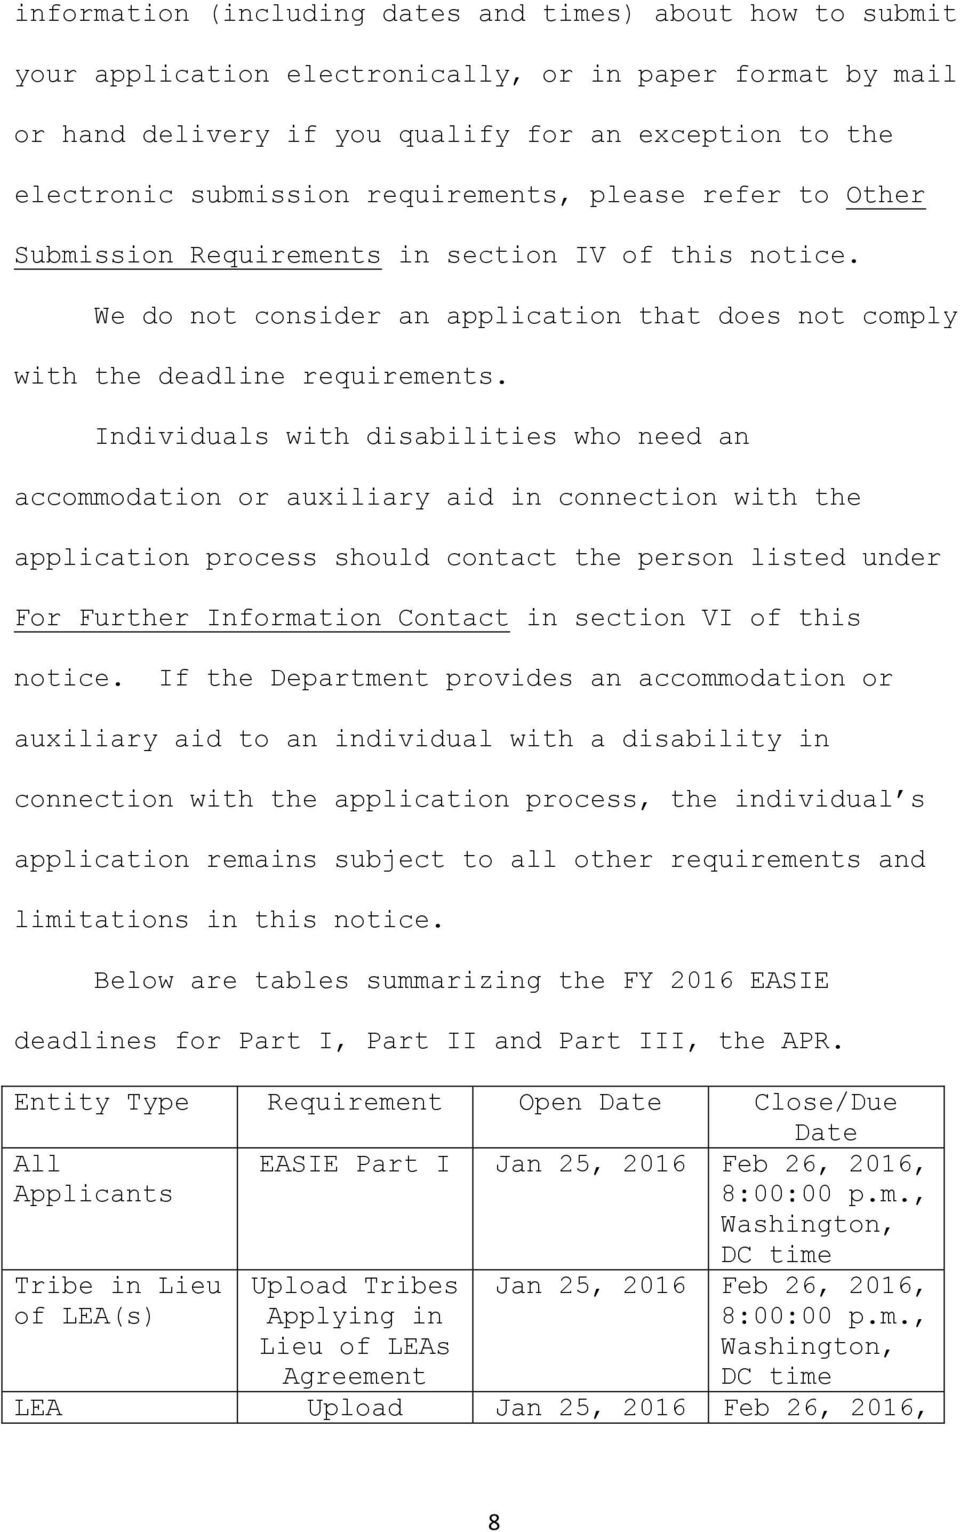 Individuals with disabilities who need an accommodation or auxiliary aid in connection with the application process should contact the person listed under For Further Information Contact in section